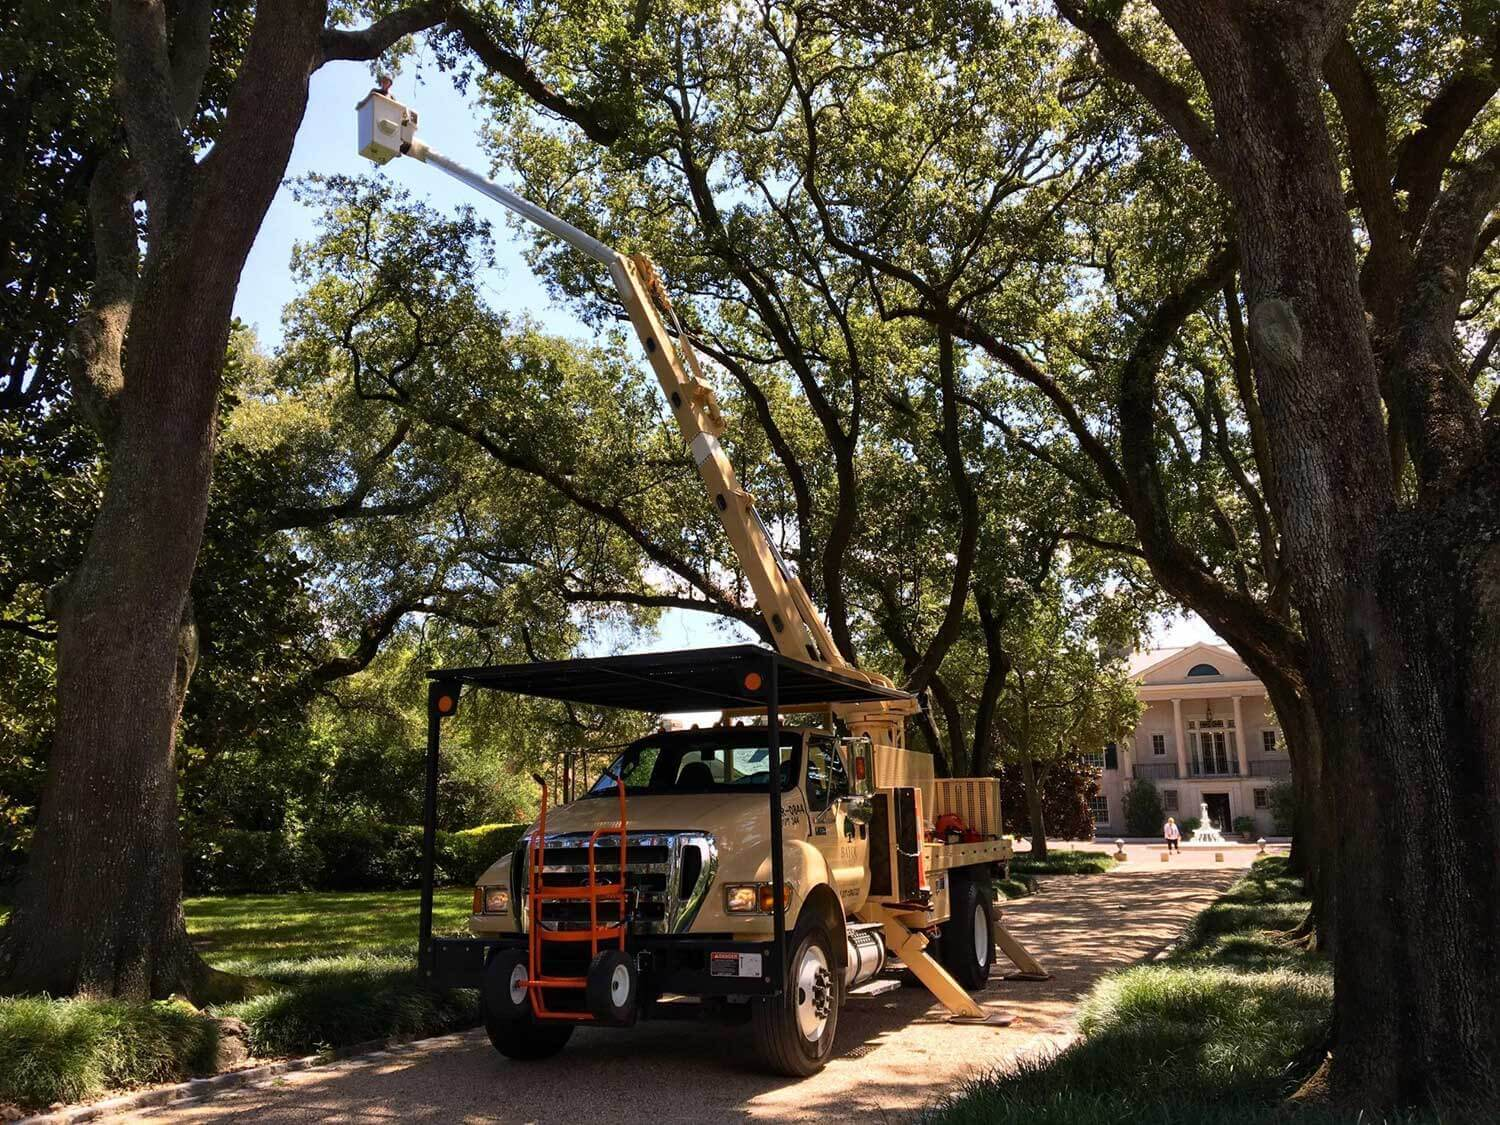 Commercial Tree Service-Loxahatchee Tree Trimming and Tree Removal Services-We Offer Tree Trimming Services, Tree Removal, Tree Pruning, Tree Cutting, Residential and Commercial Tree Trimming Services, Storm Damage, Emergency Tree Removal, Land Clearing, Tree Companies, Tree Care Service, Stump Grinding, and we're the Best Tree Trimming Company Near You Guaranteed!